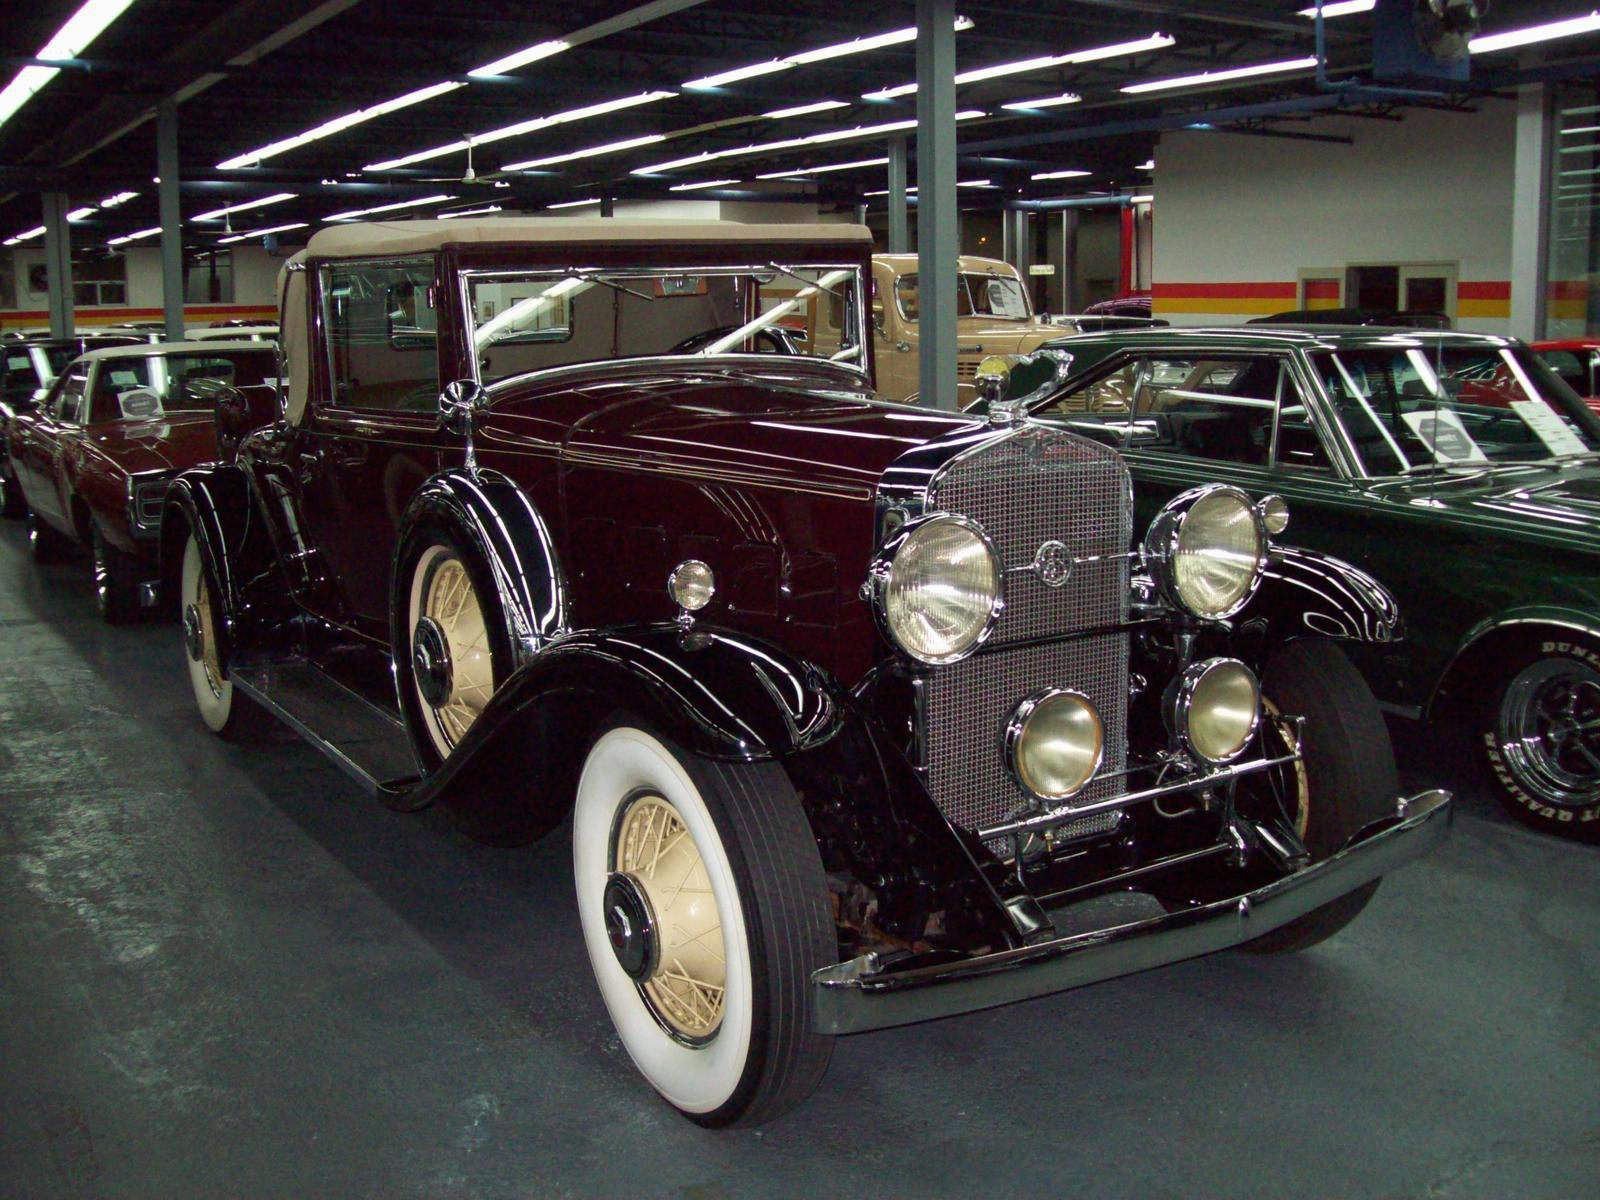 Used Cadillac Lasalle 340 Convertible Coupe Rumble Seat For Sale 1941 Mercury Eight 1931